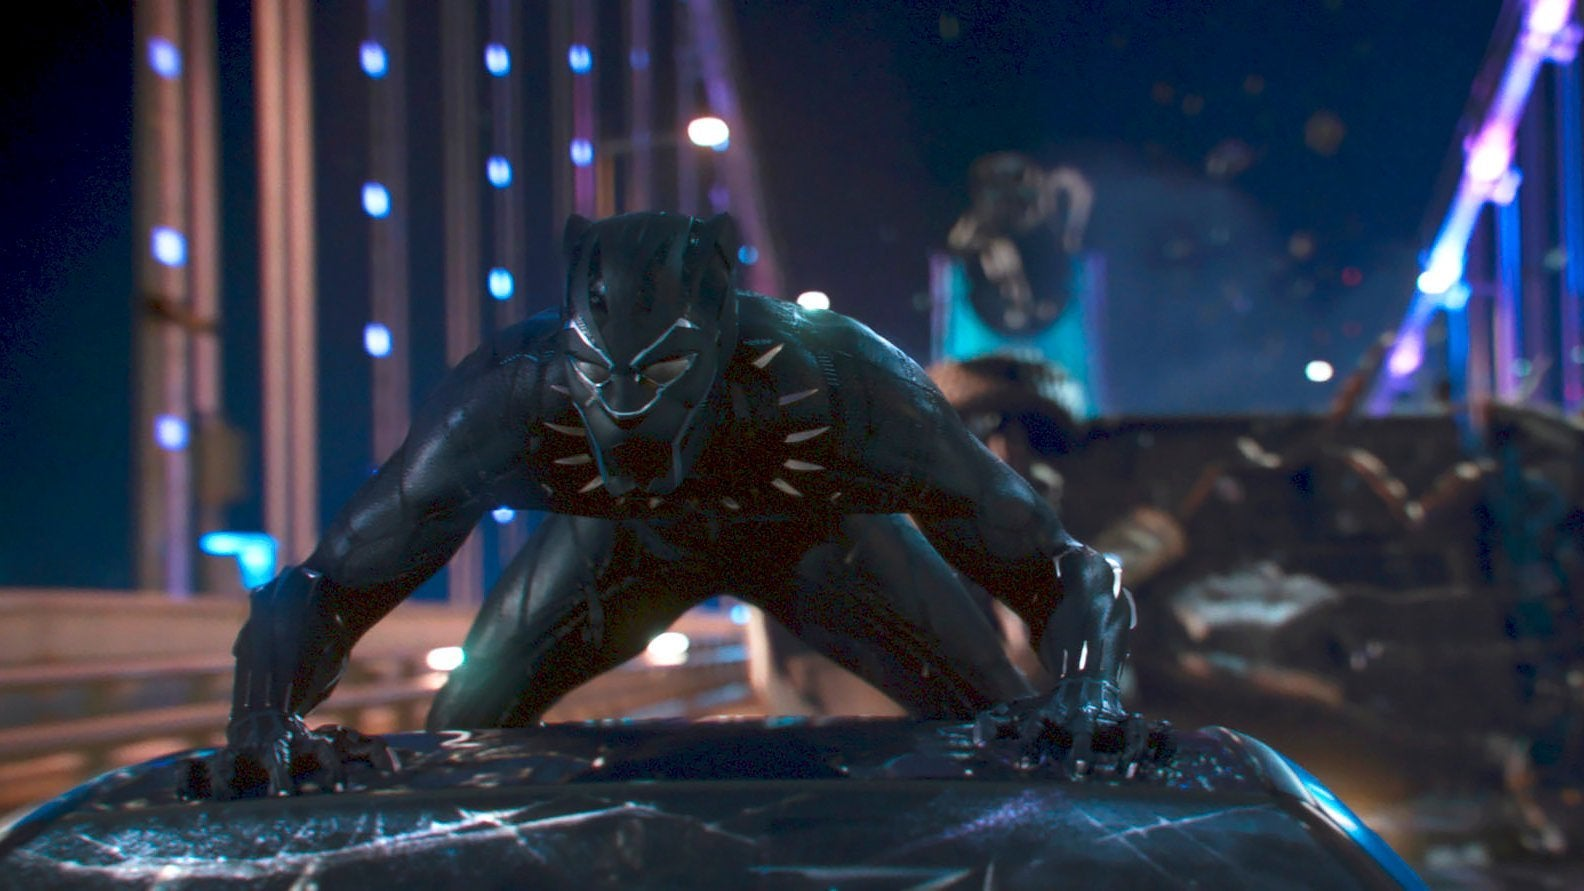 Use These Free Resources To Help Kids Reflect On Black Panther